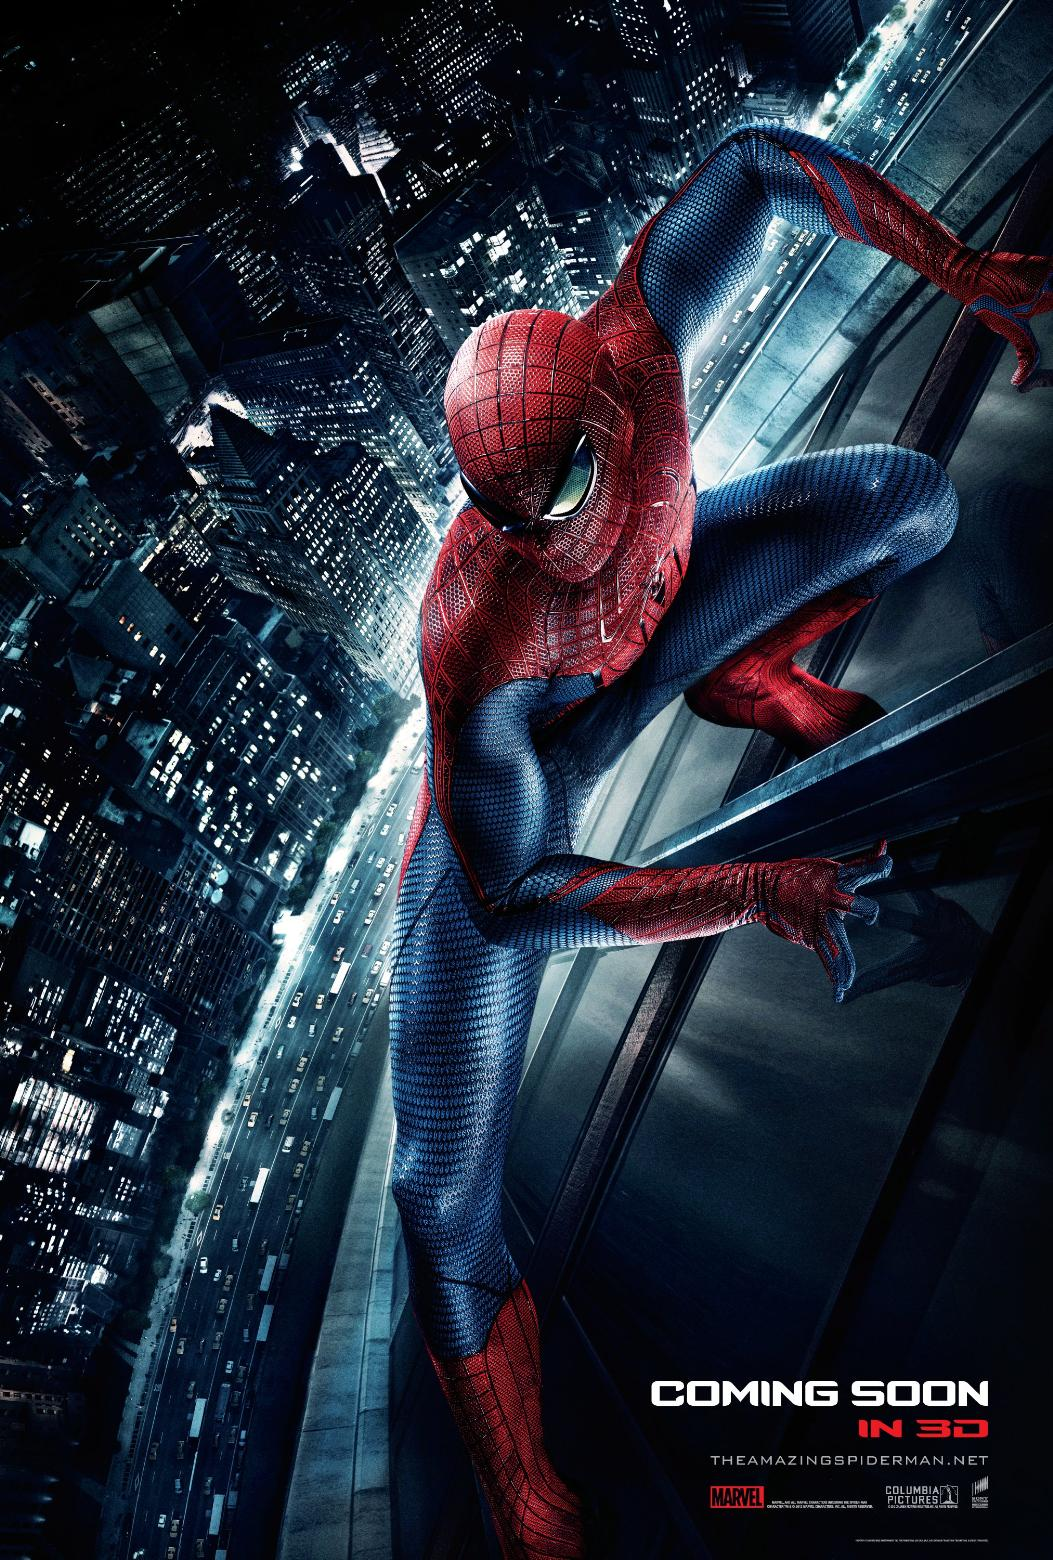 The Amazing Spider-Man: 4-minute Super Preview hits online! *SPOILERS*